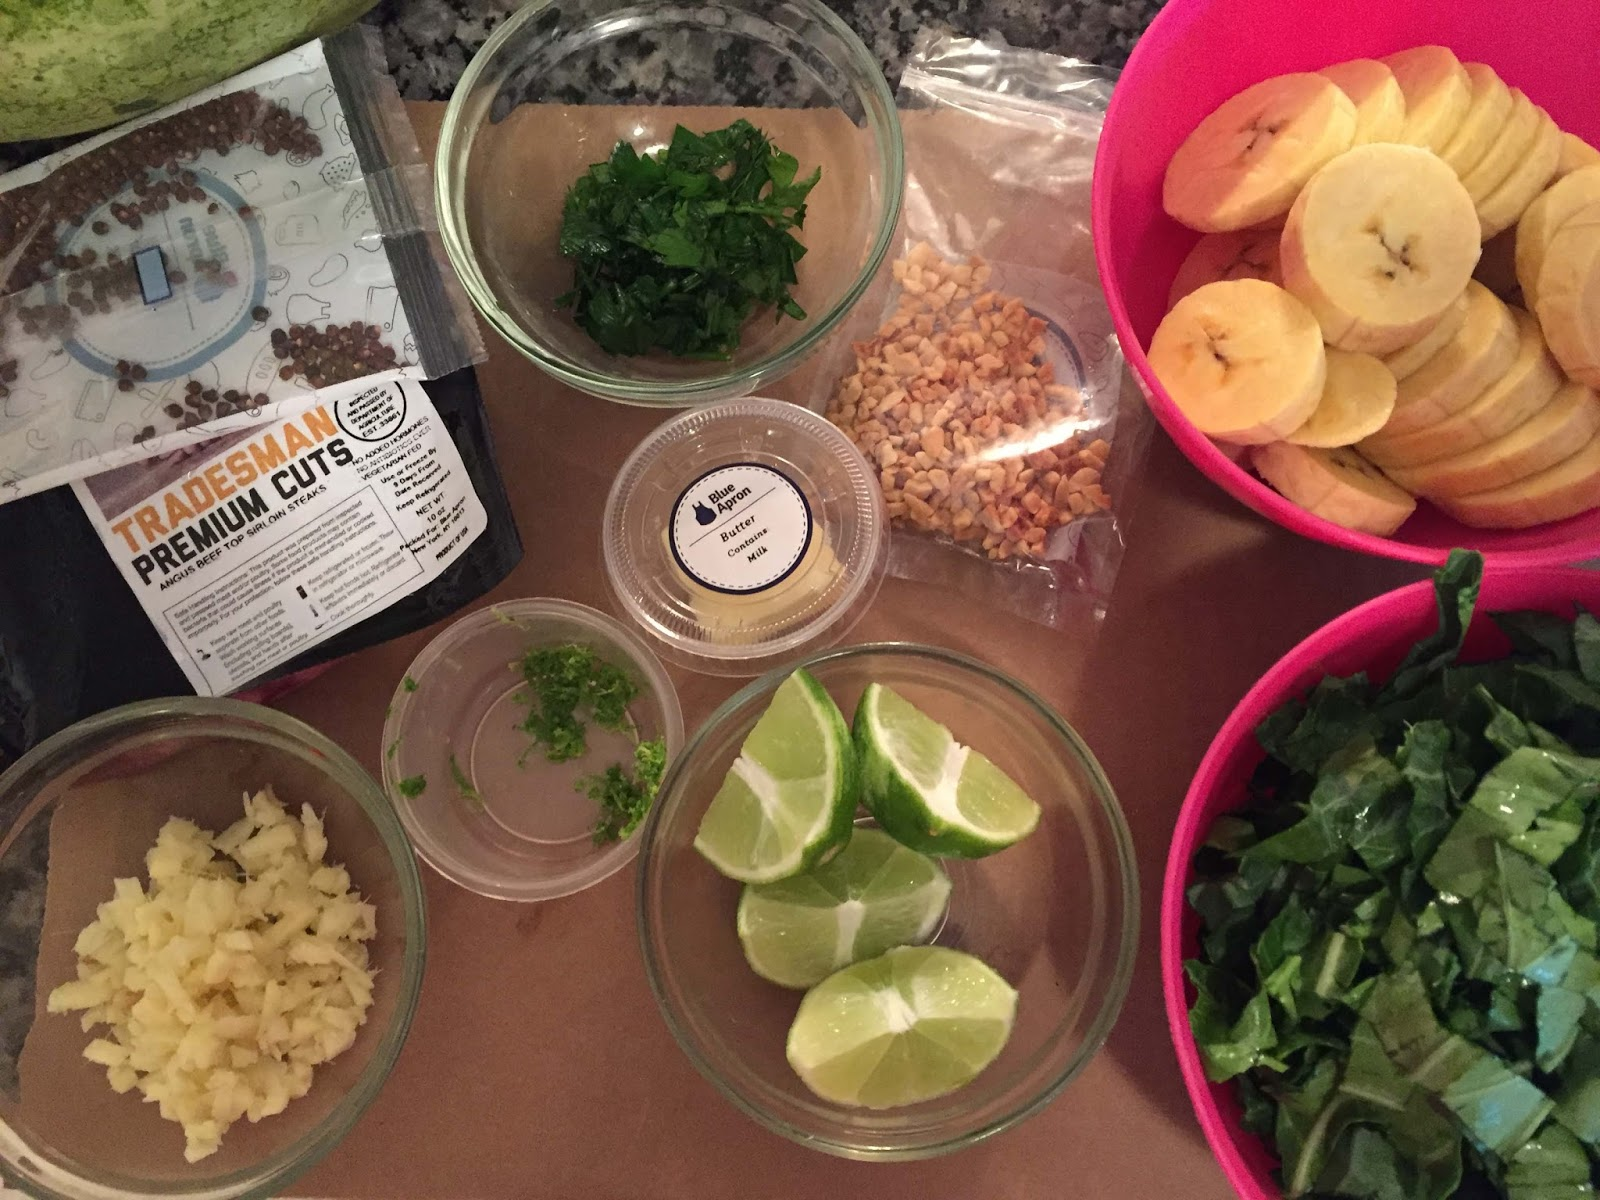 Blue apron omaha - The Card Gives You Step By Steps On What To Chop Up And How The Prep Takes A Bit Of Time But I Really Enjoyed It Because I Was Working With Things